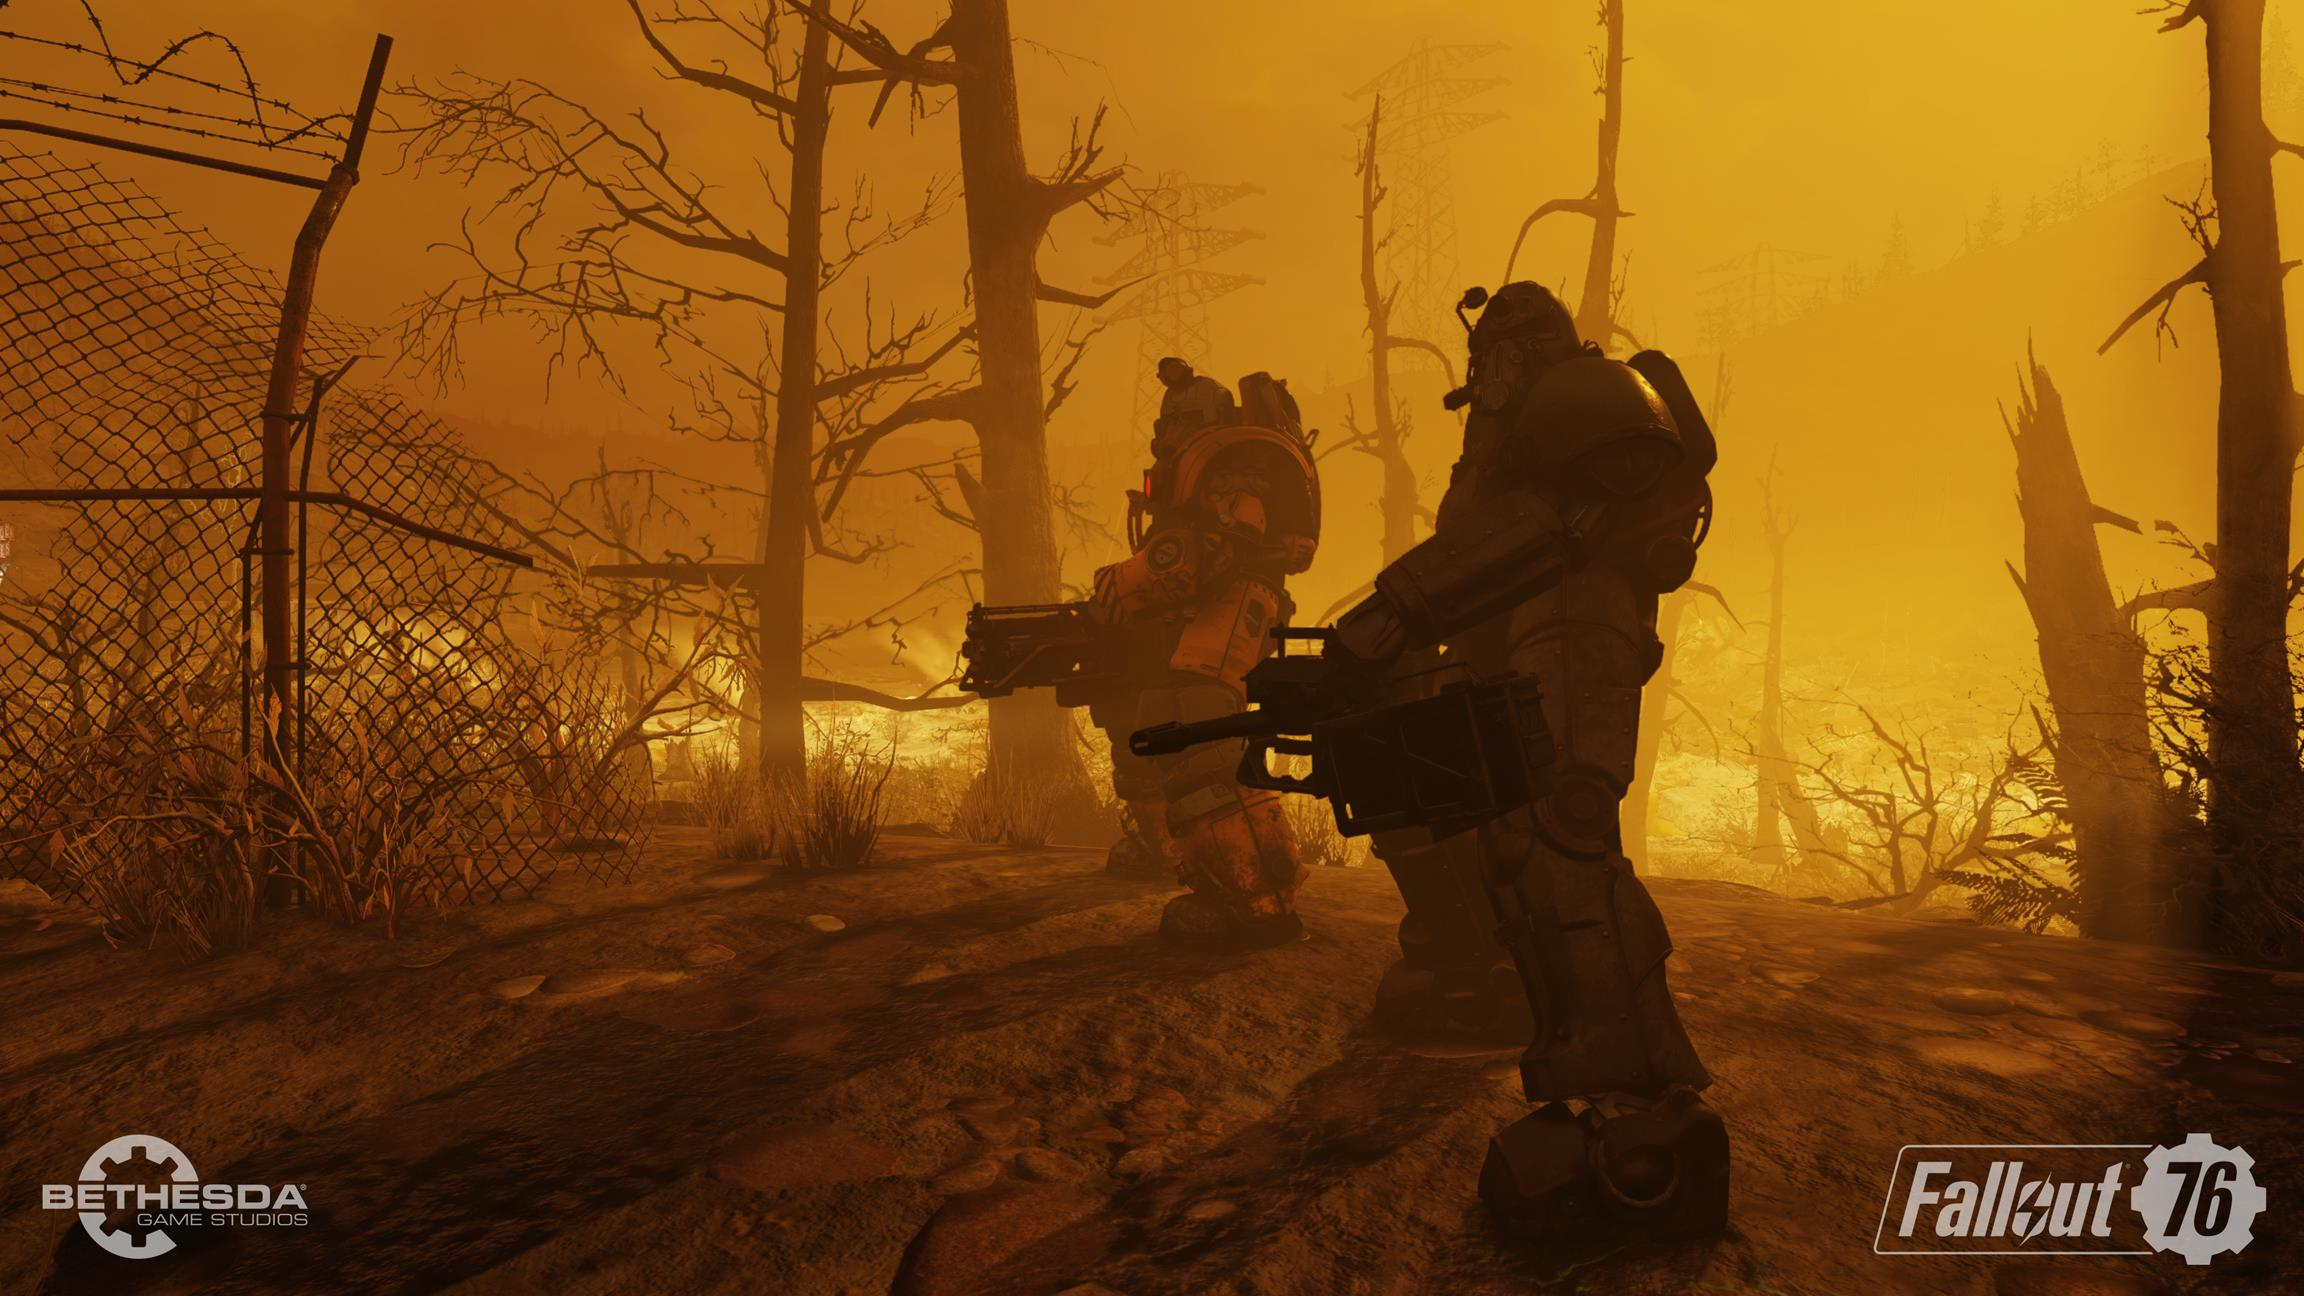 Fallout 76 PC specs - here's the minimum and what's recommended